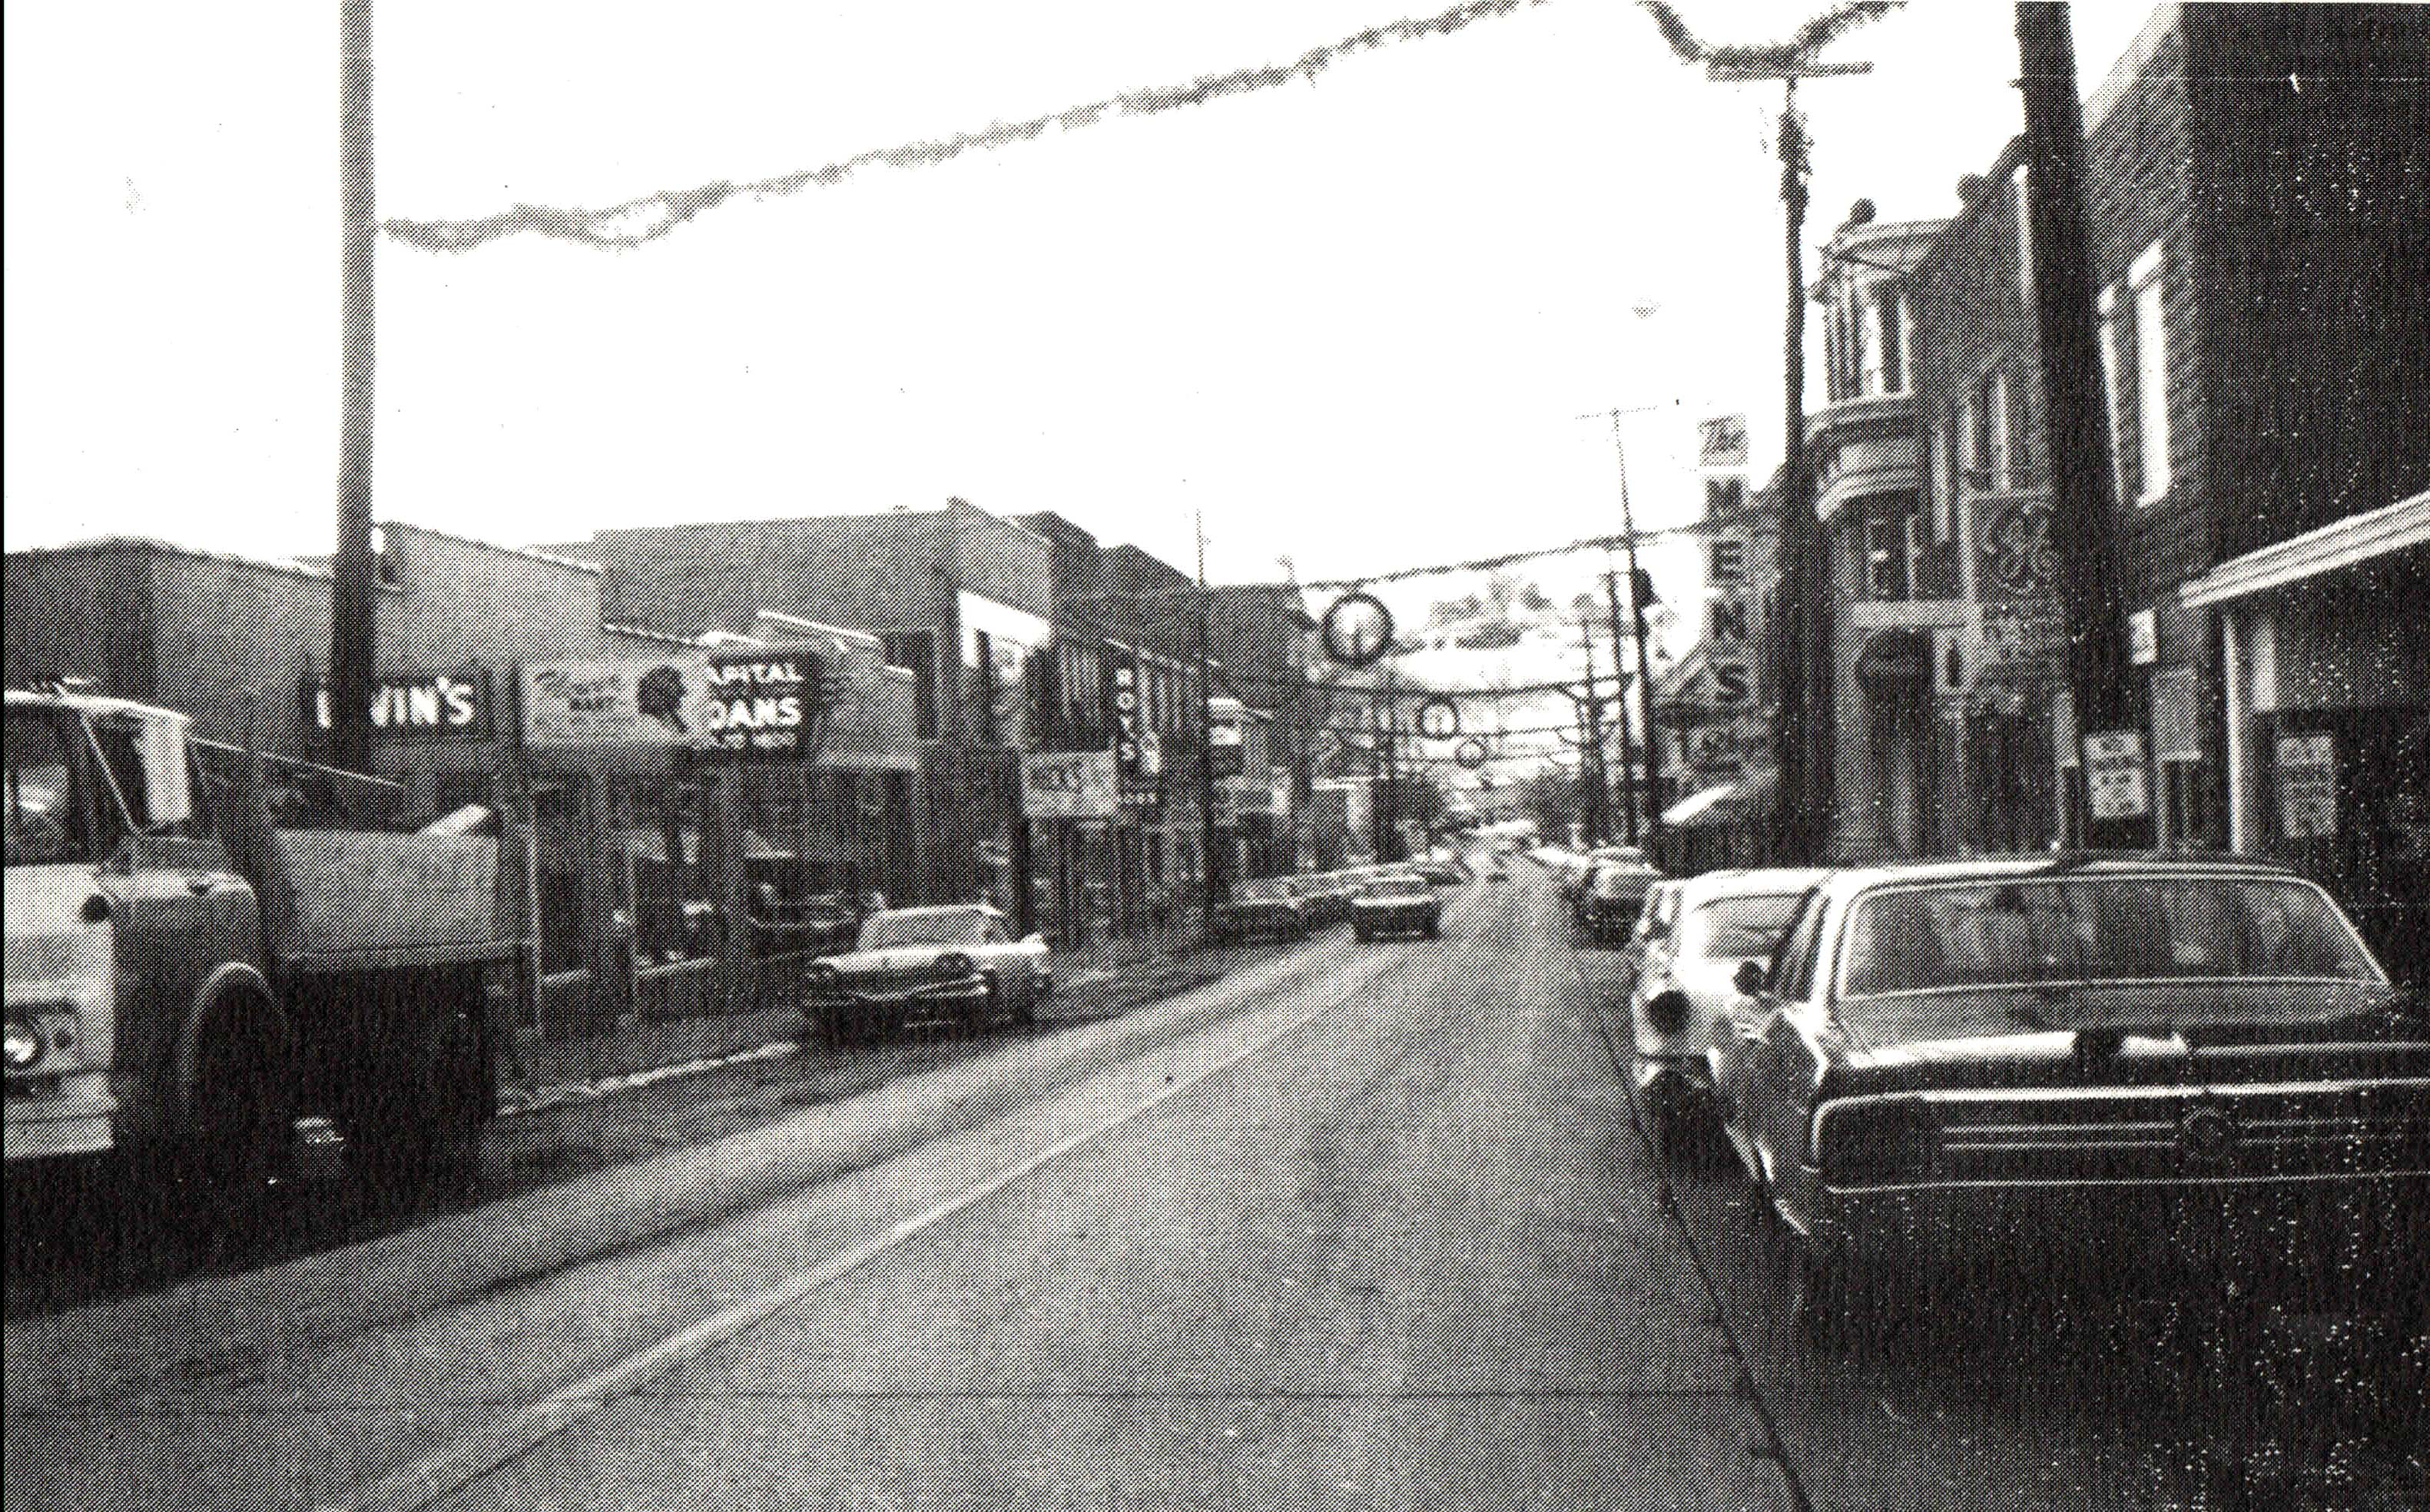 Main St. in the 1960s